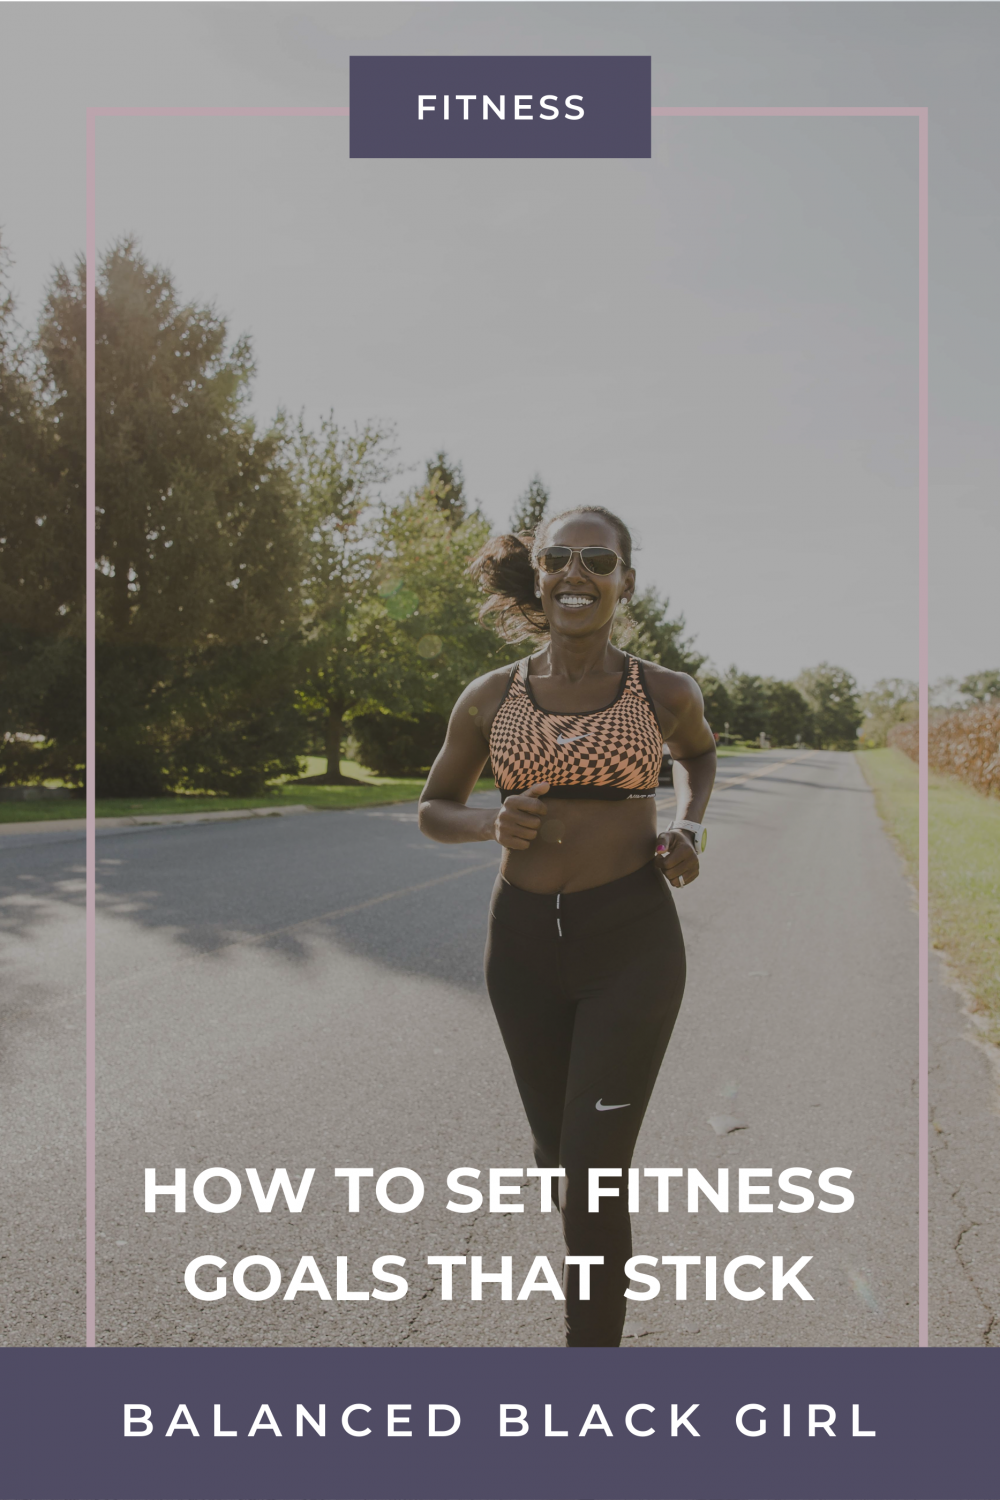 How to Set Fitness Goals That Stick